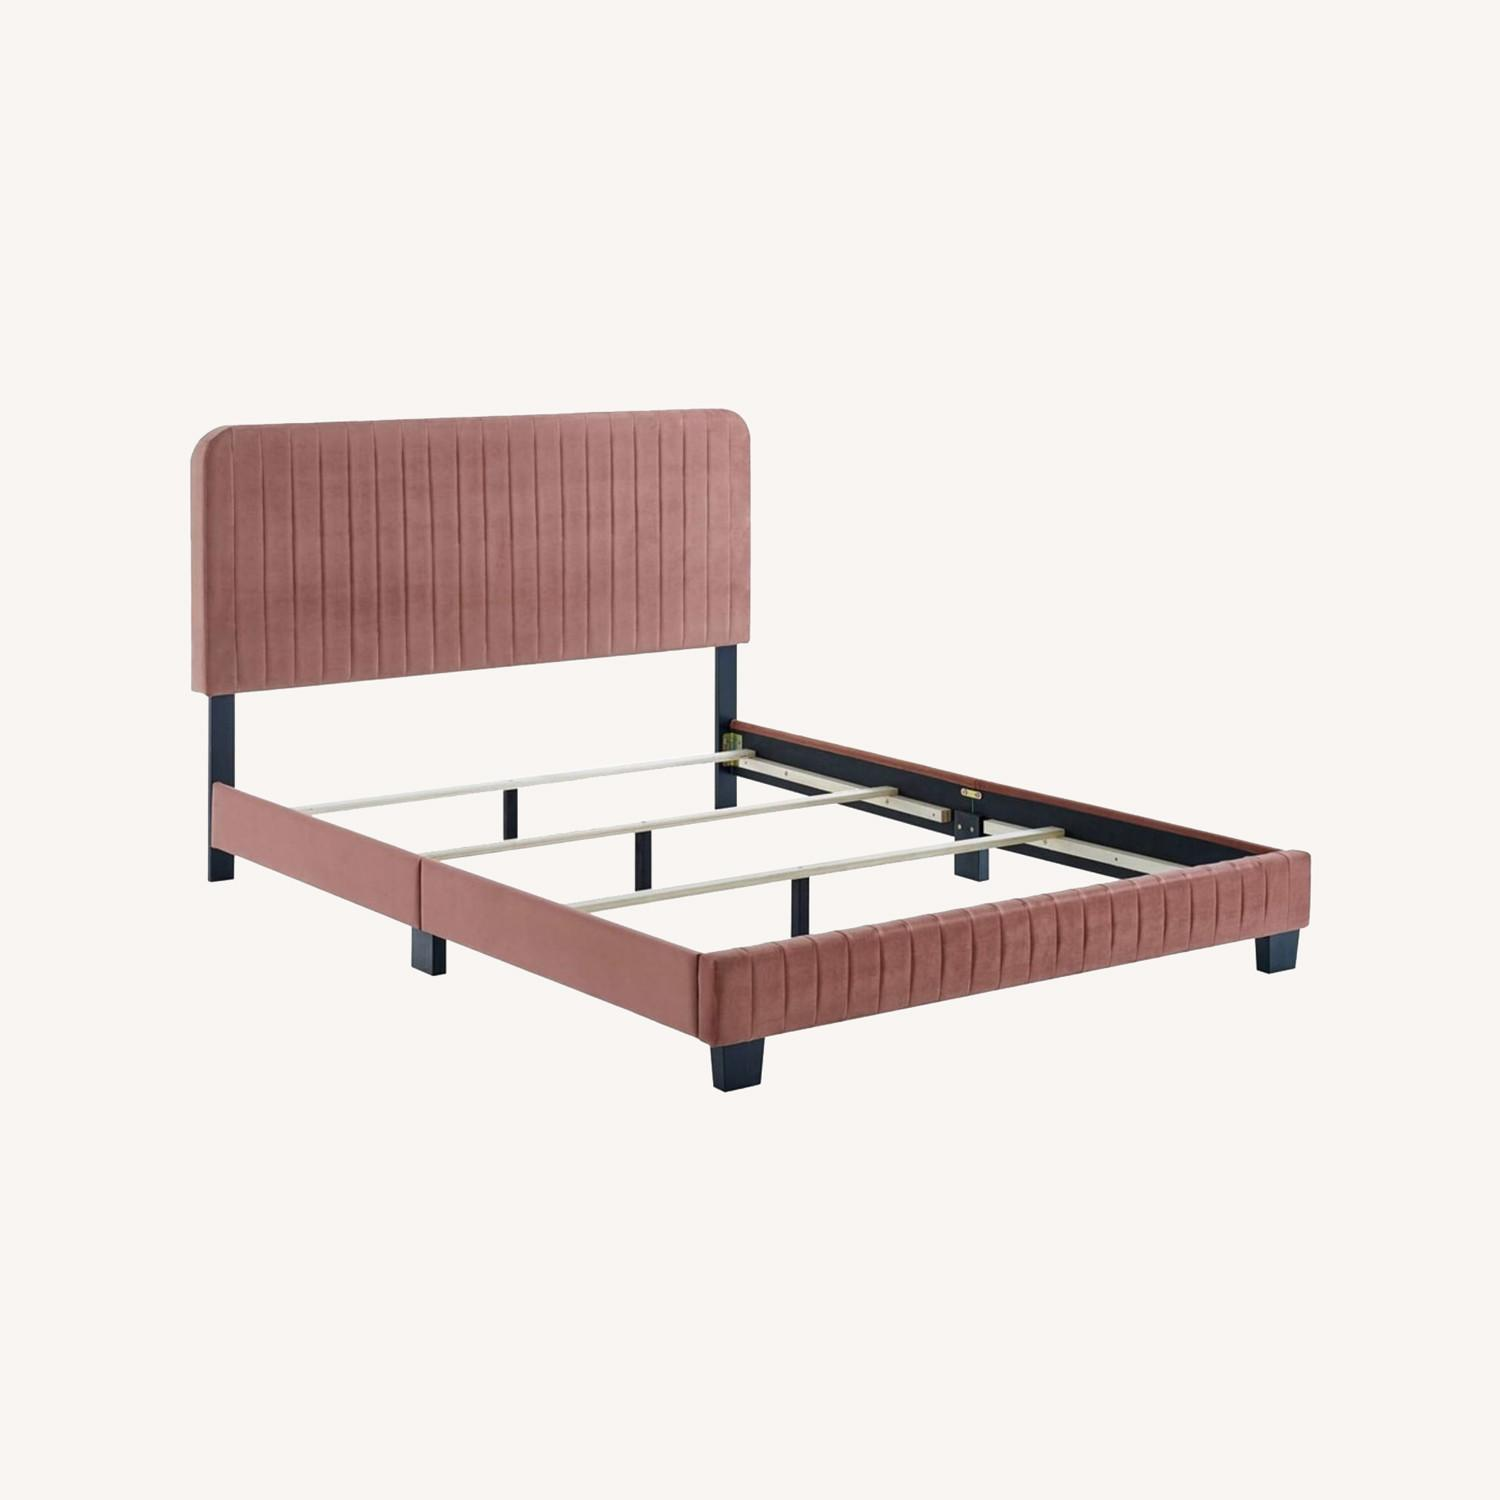 Twin Bed In Dusty Rose Tufted Velvet Fabric Finish - image-8